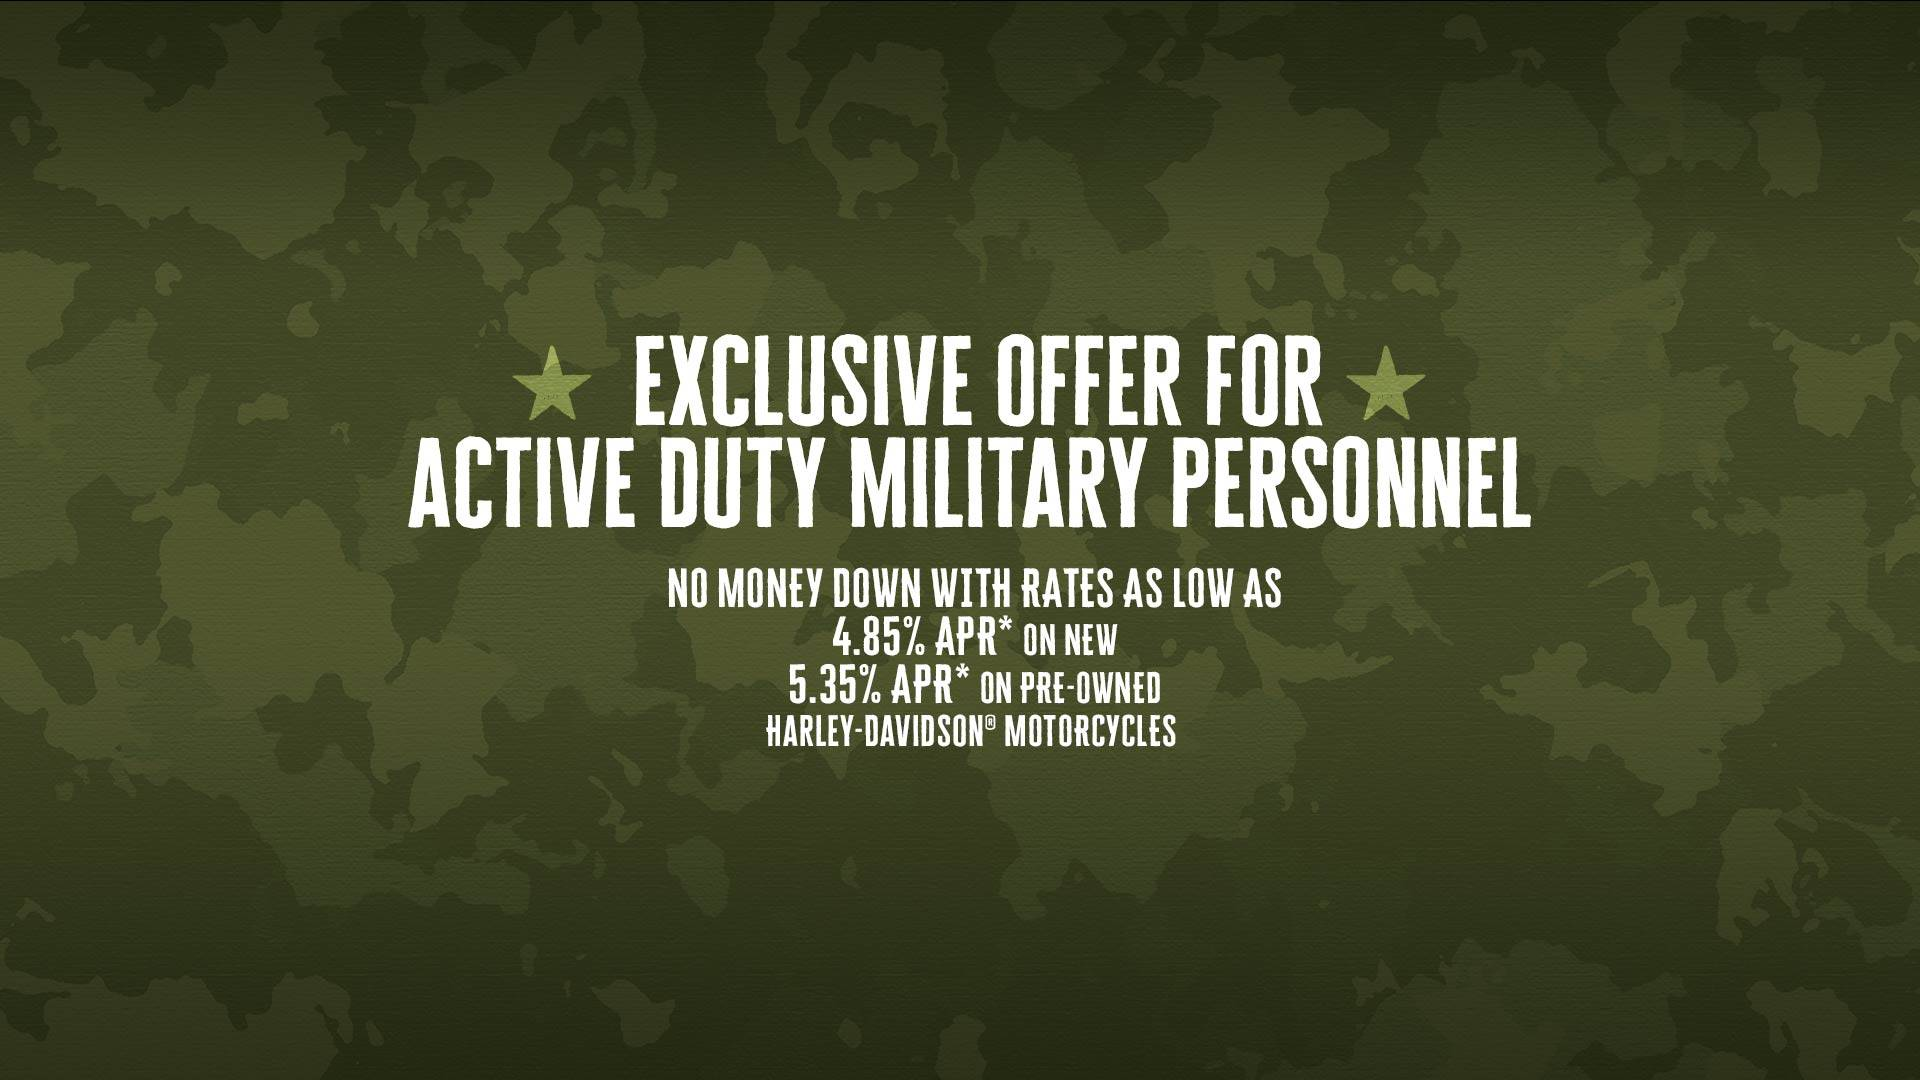 Harley-Davidson STATESIDE MILITARY FINANCING PROGRAM